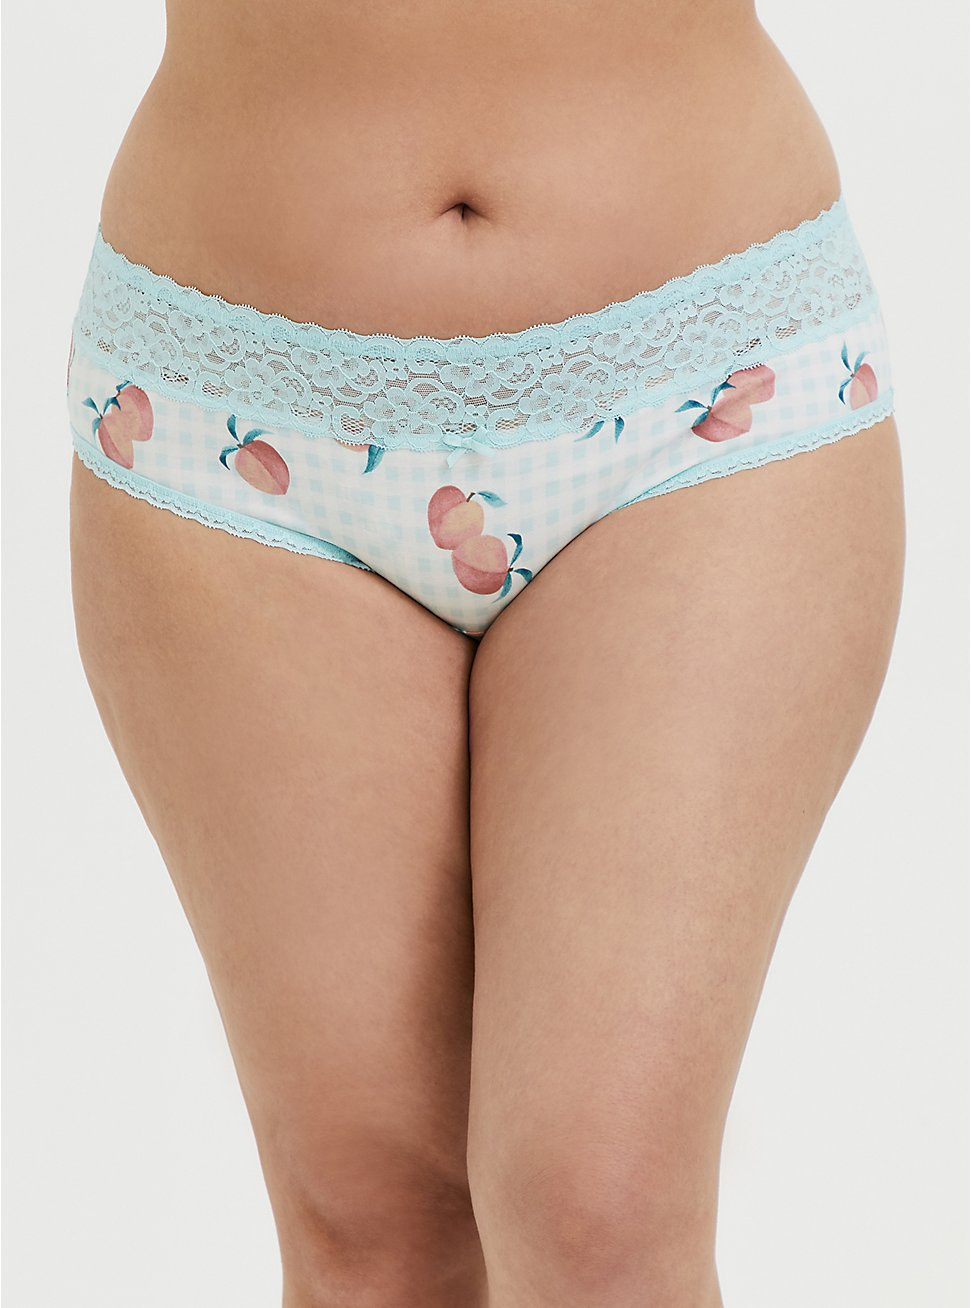 Aqua Gingham & Peach Print Wide Lace Cotton Hipster Panty, SWEET AS A PEACH, hi-res